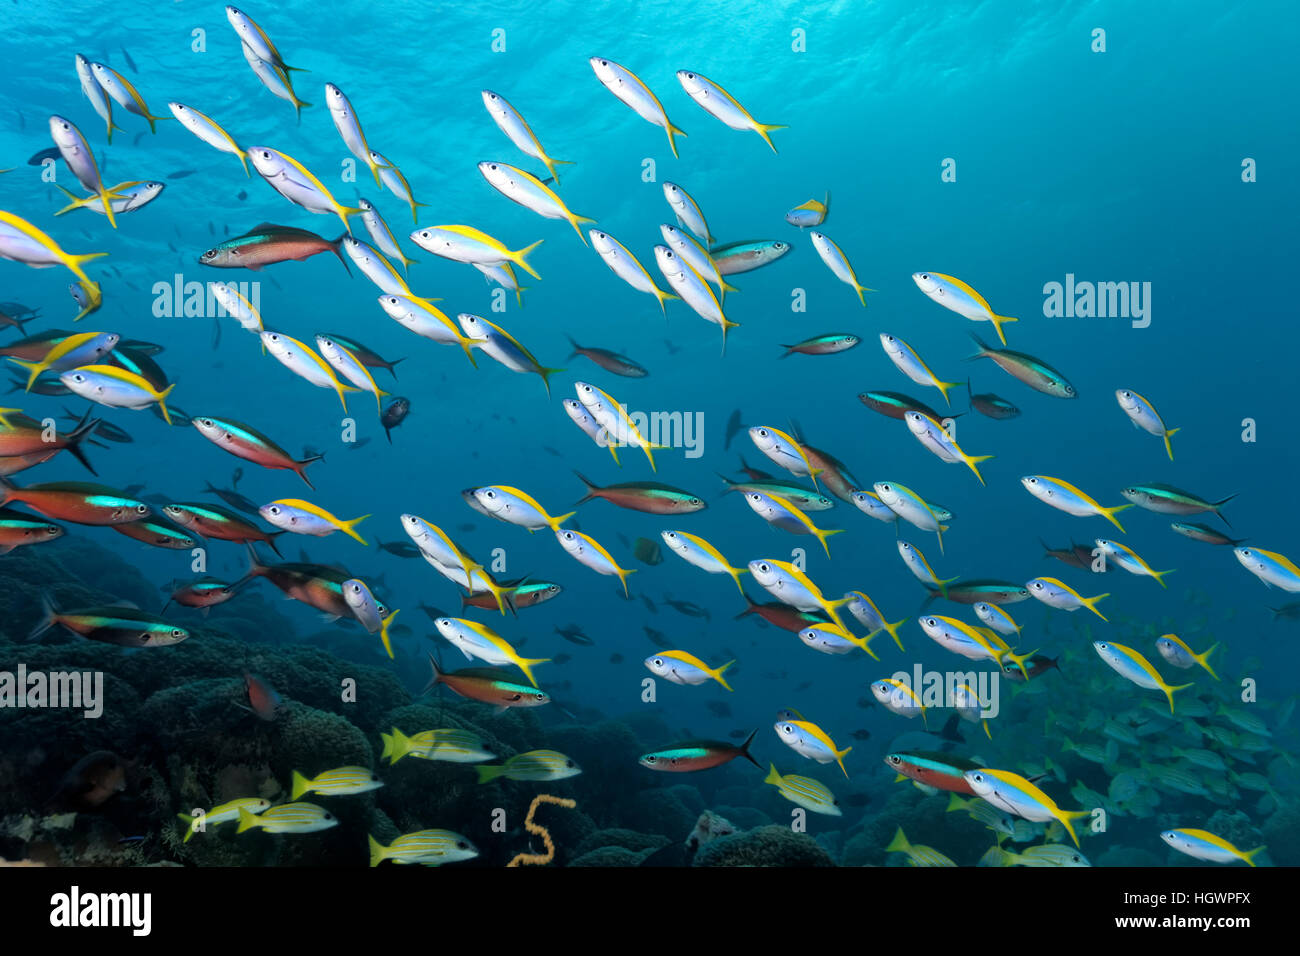 School of yellowback fusiliers (Caesio xanthonota) and neon fusiliers (Pterocaesio tile), swimming over coral reef Stock Photo